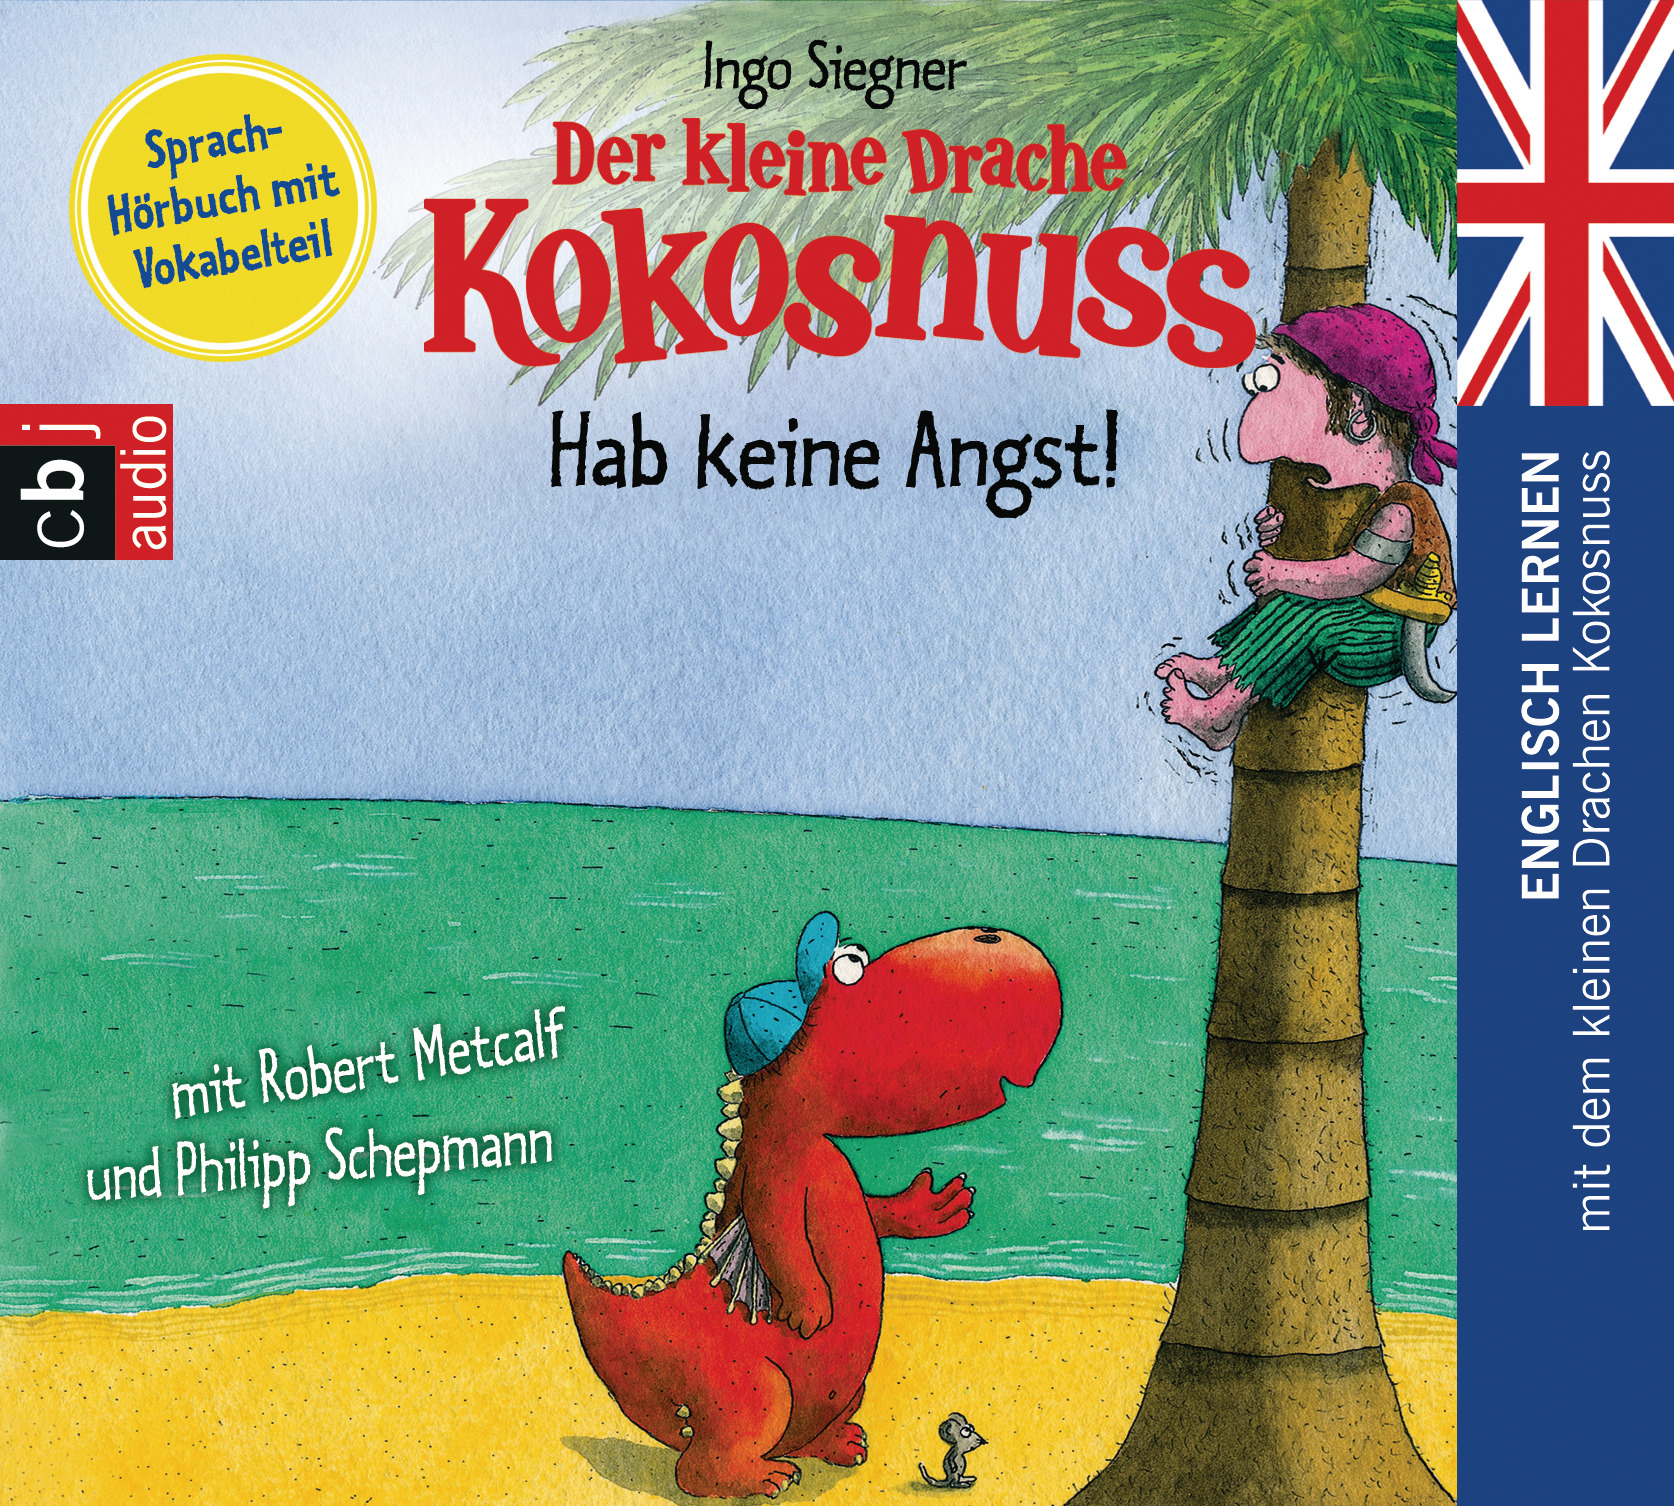 https://www.randomhouse.de/content/edition/covervoila_hires/Siegner_IKokosnuss_Engl2-Angst_1CD_174423.jpg